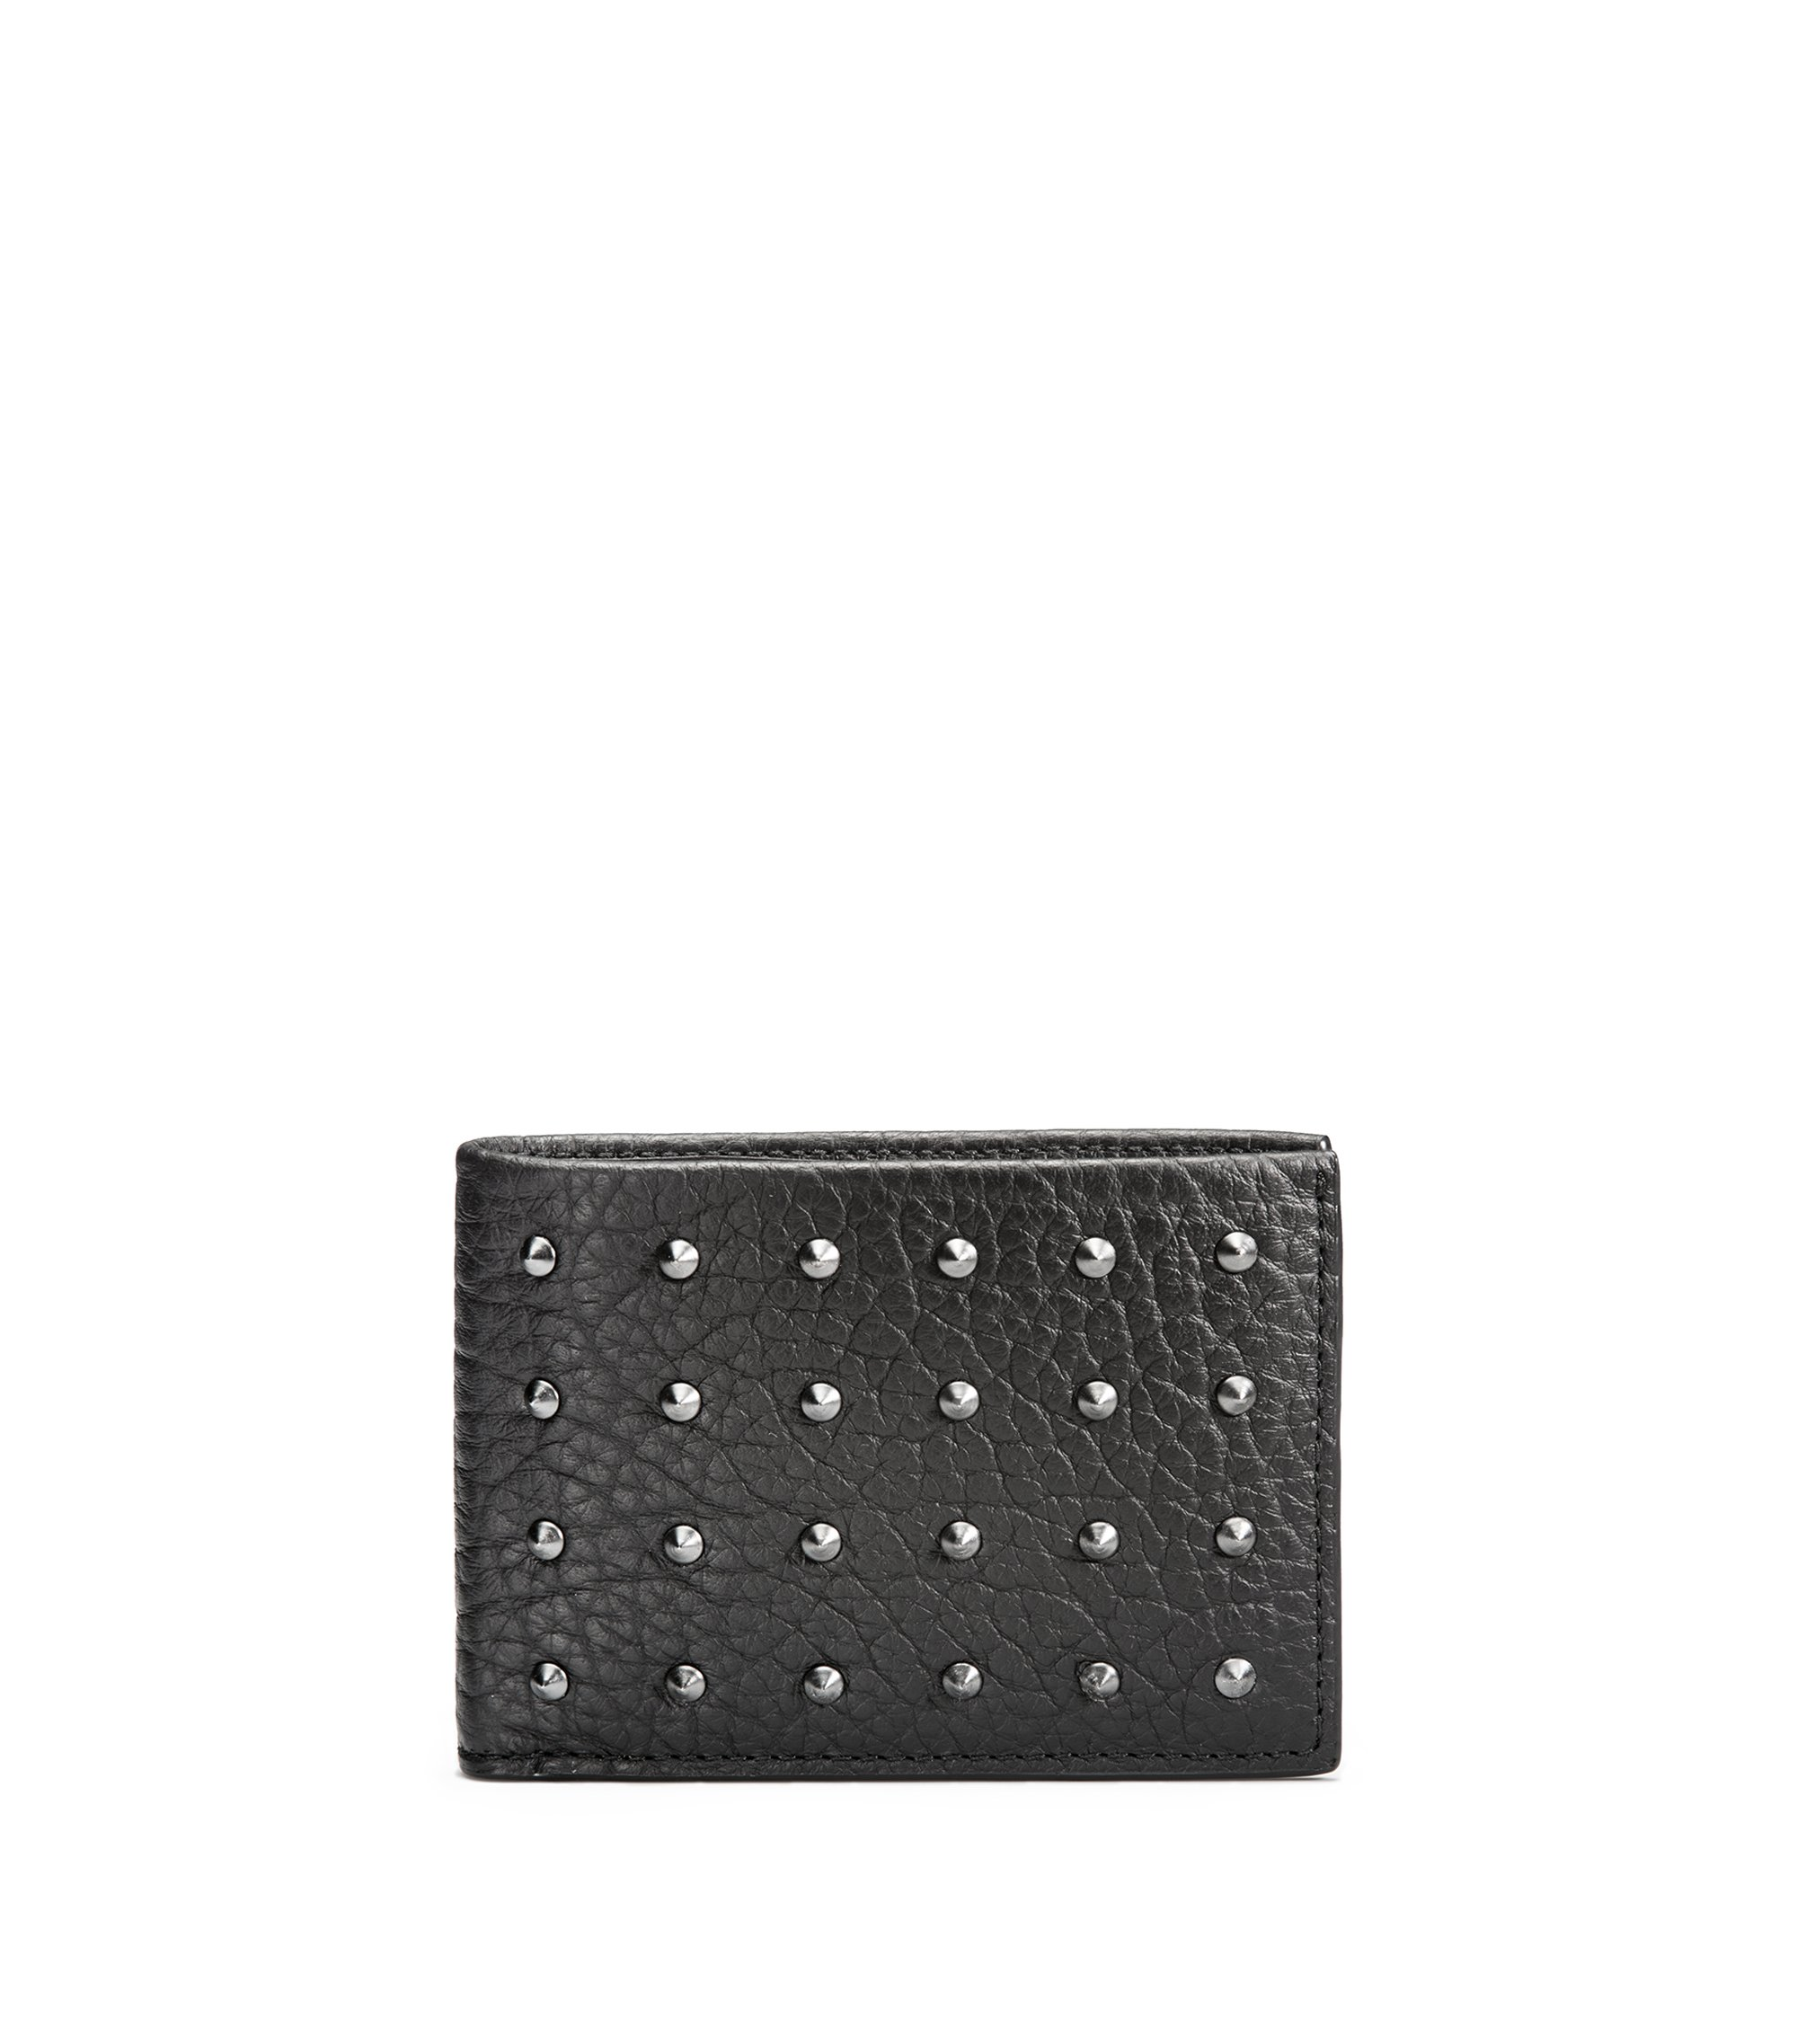 Studded Leather Wallet | Victorian S S 6CC, Black